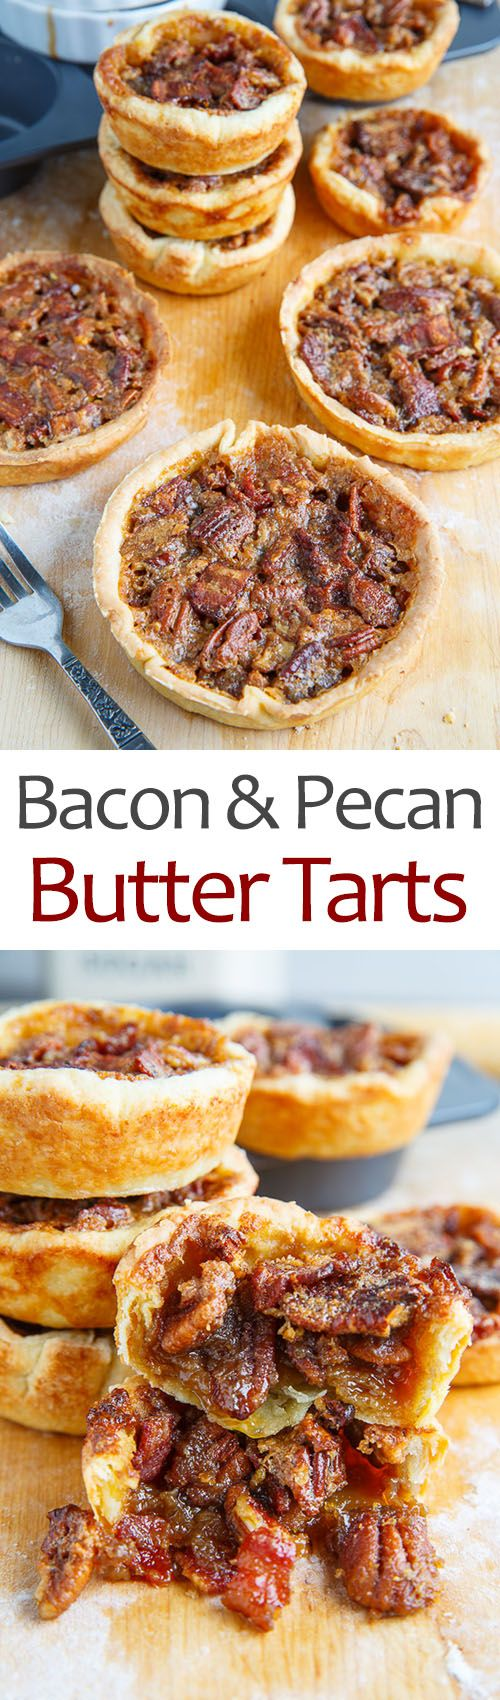 Maple Bourbon Bacon and Pecan Butter Tarts: